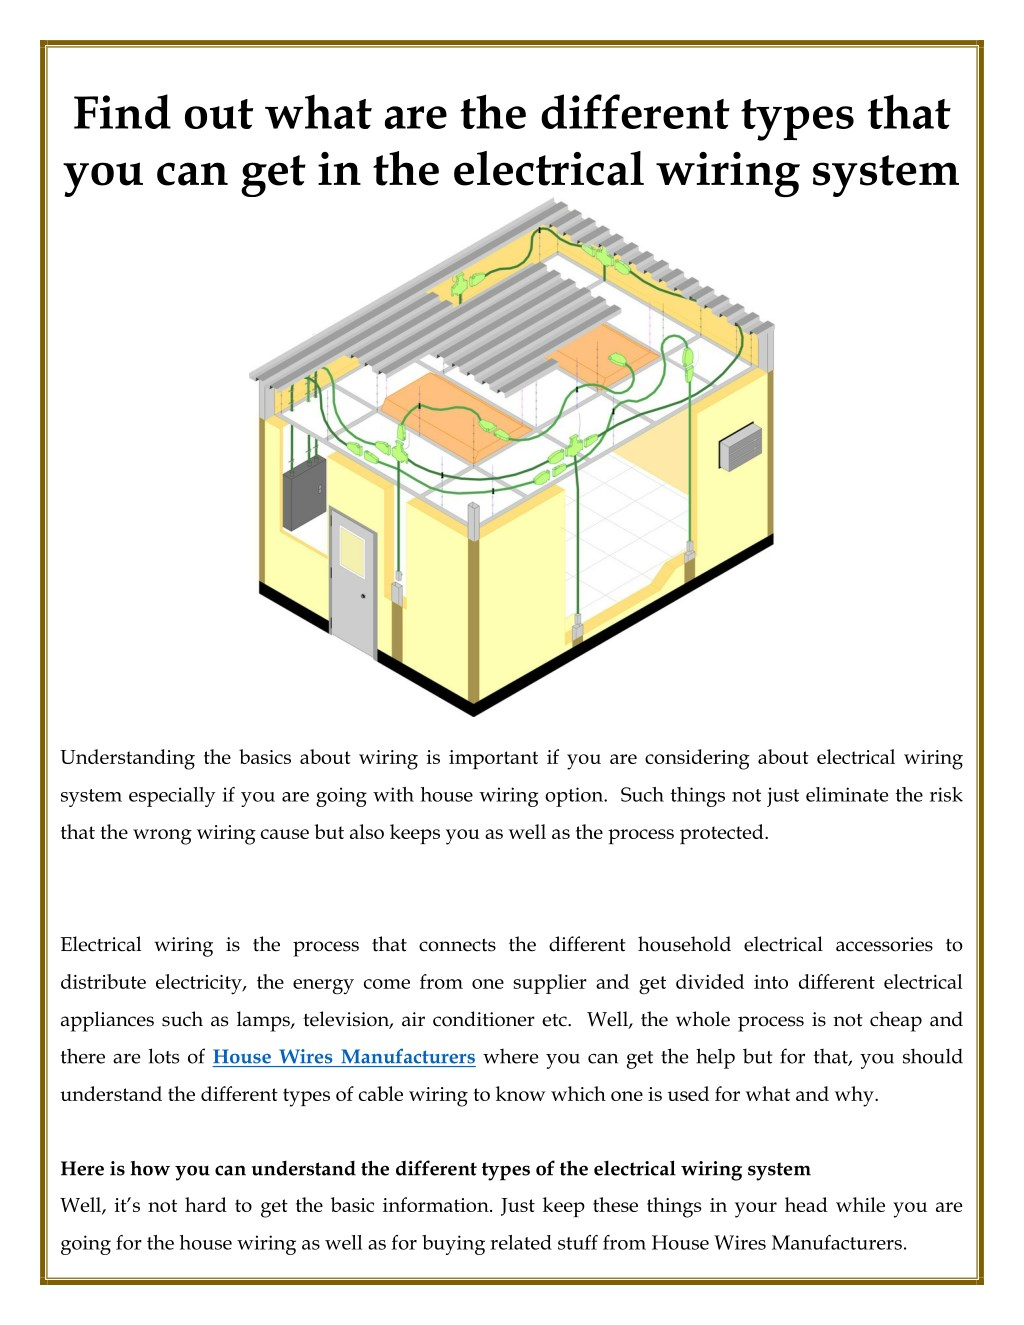 Phenomenal Ppt Different Types That You Can Get In The Electrical Wiring Wiring Digital Resources Arguphilshebarightsorg